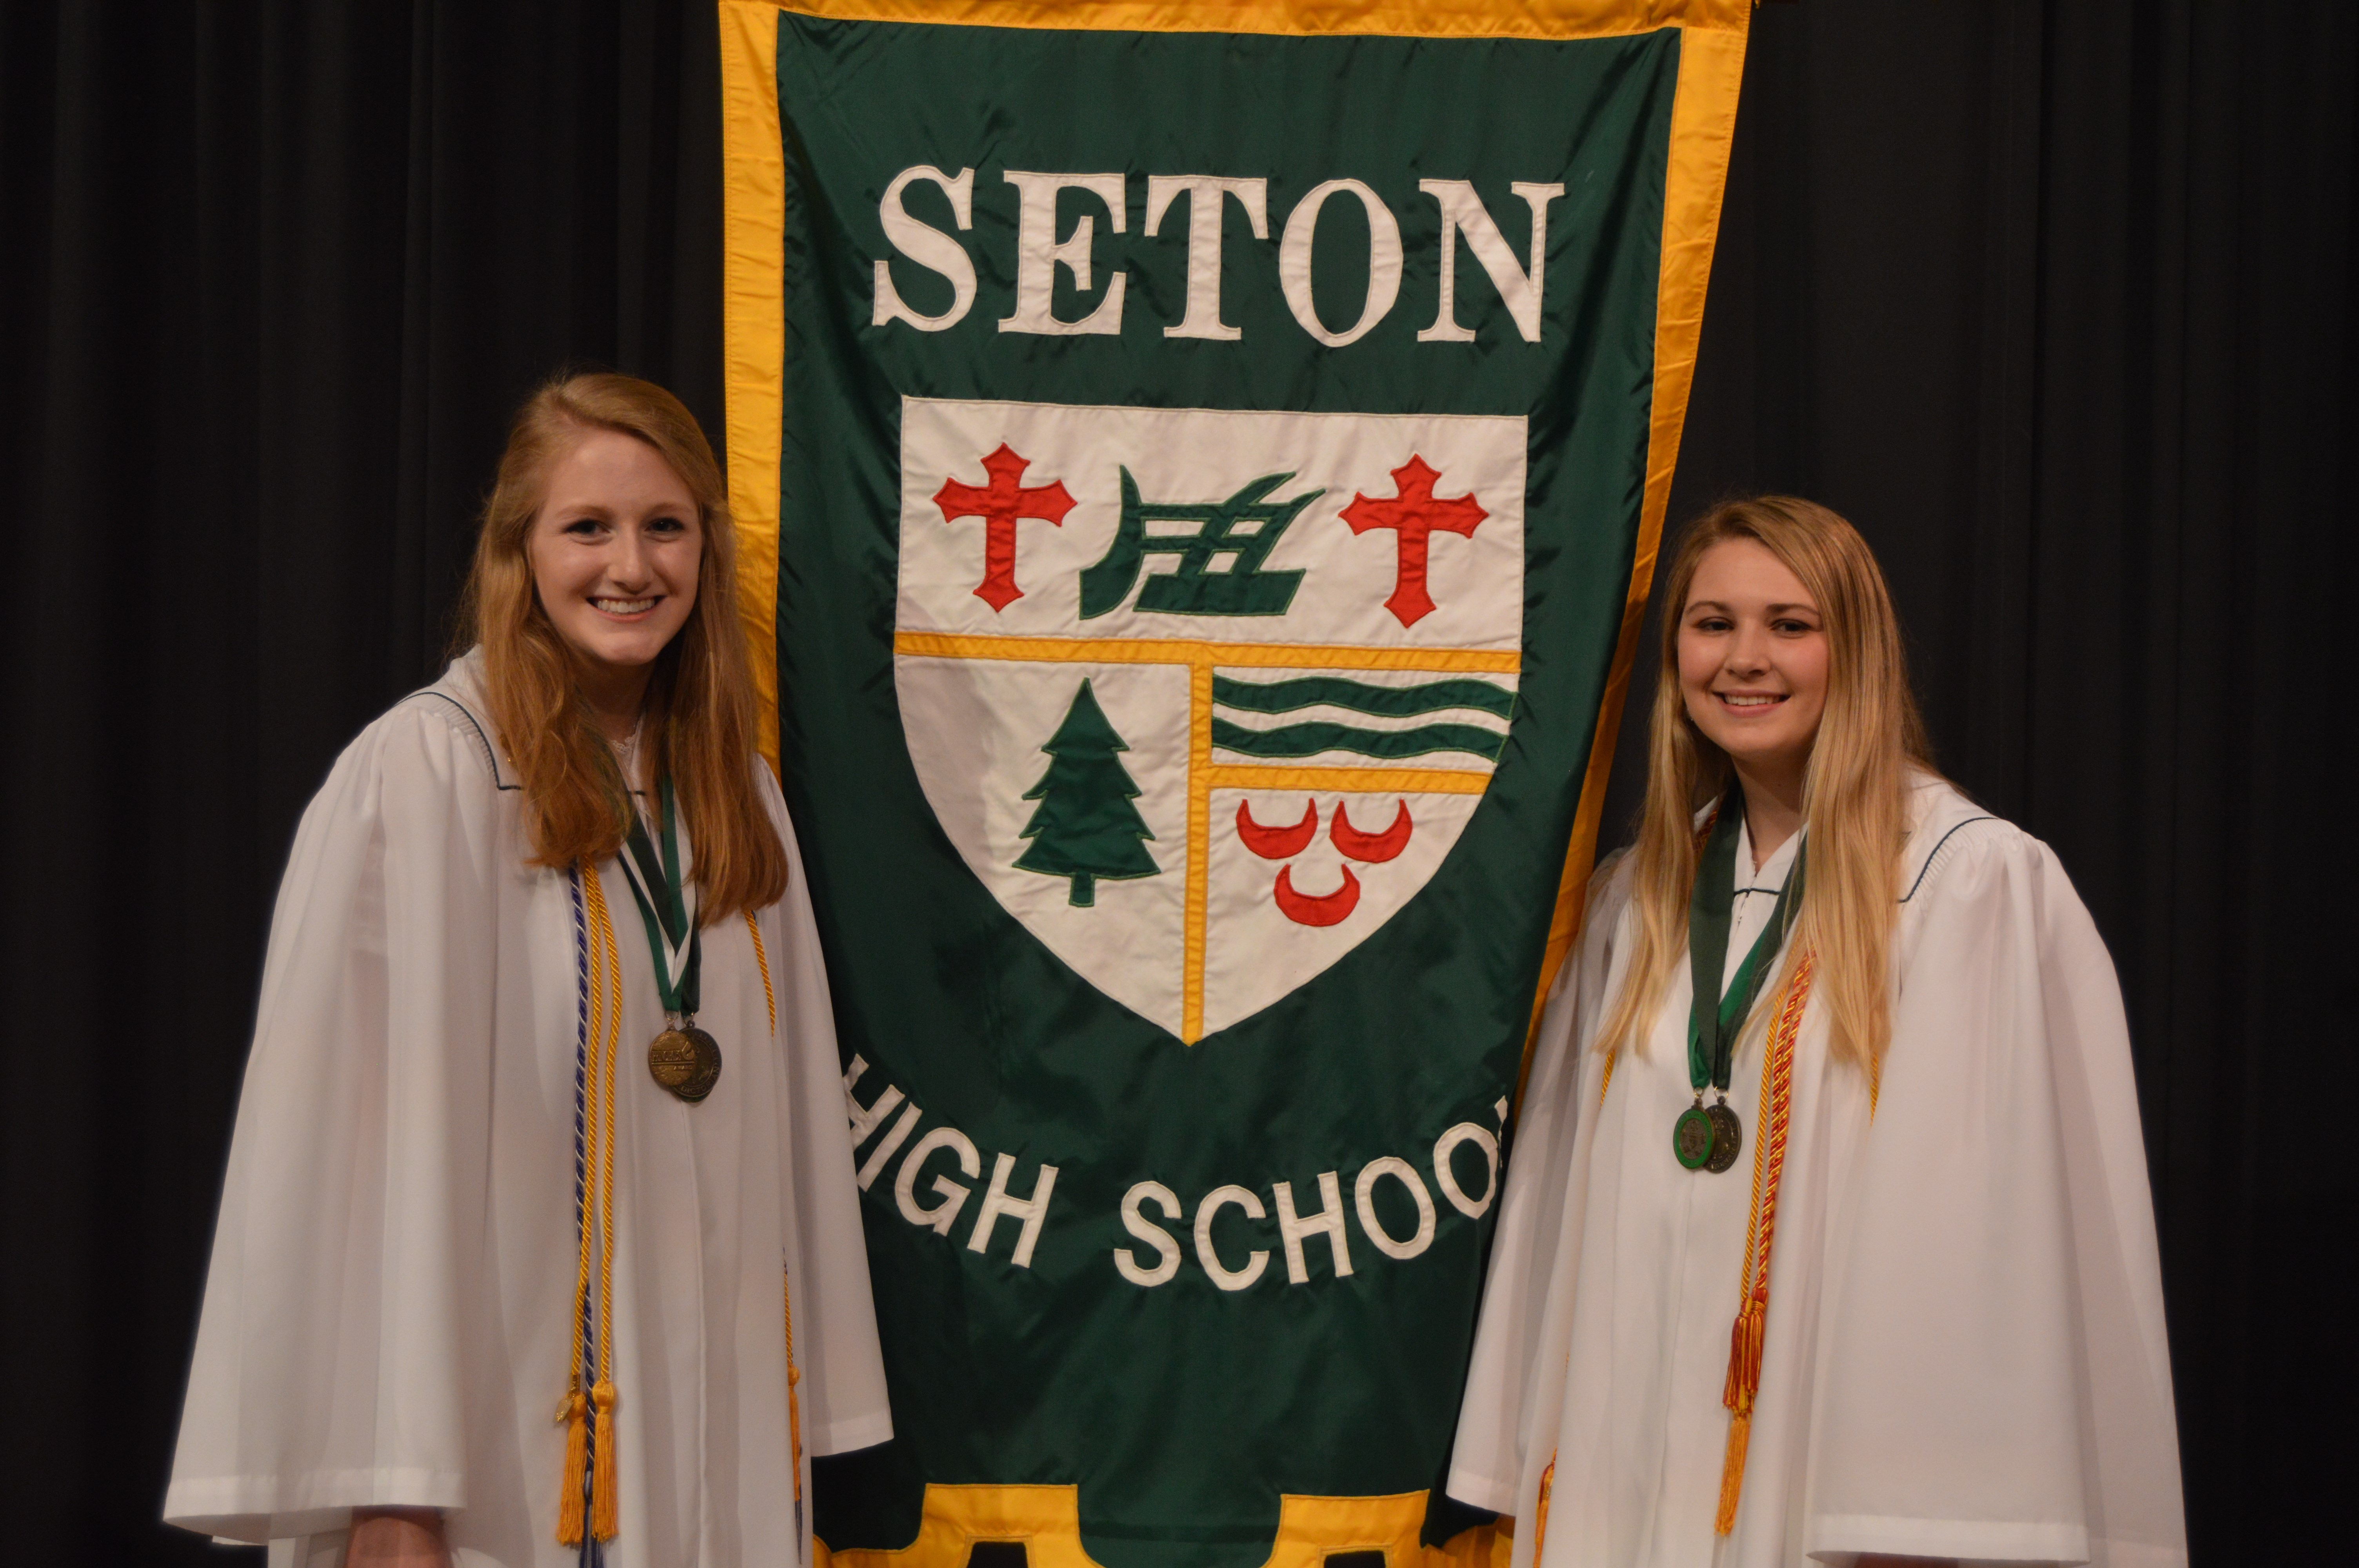 Seton's val, sal prepared for future success